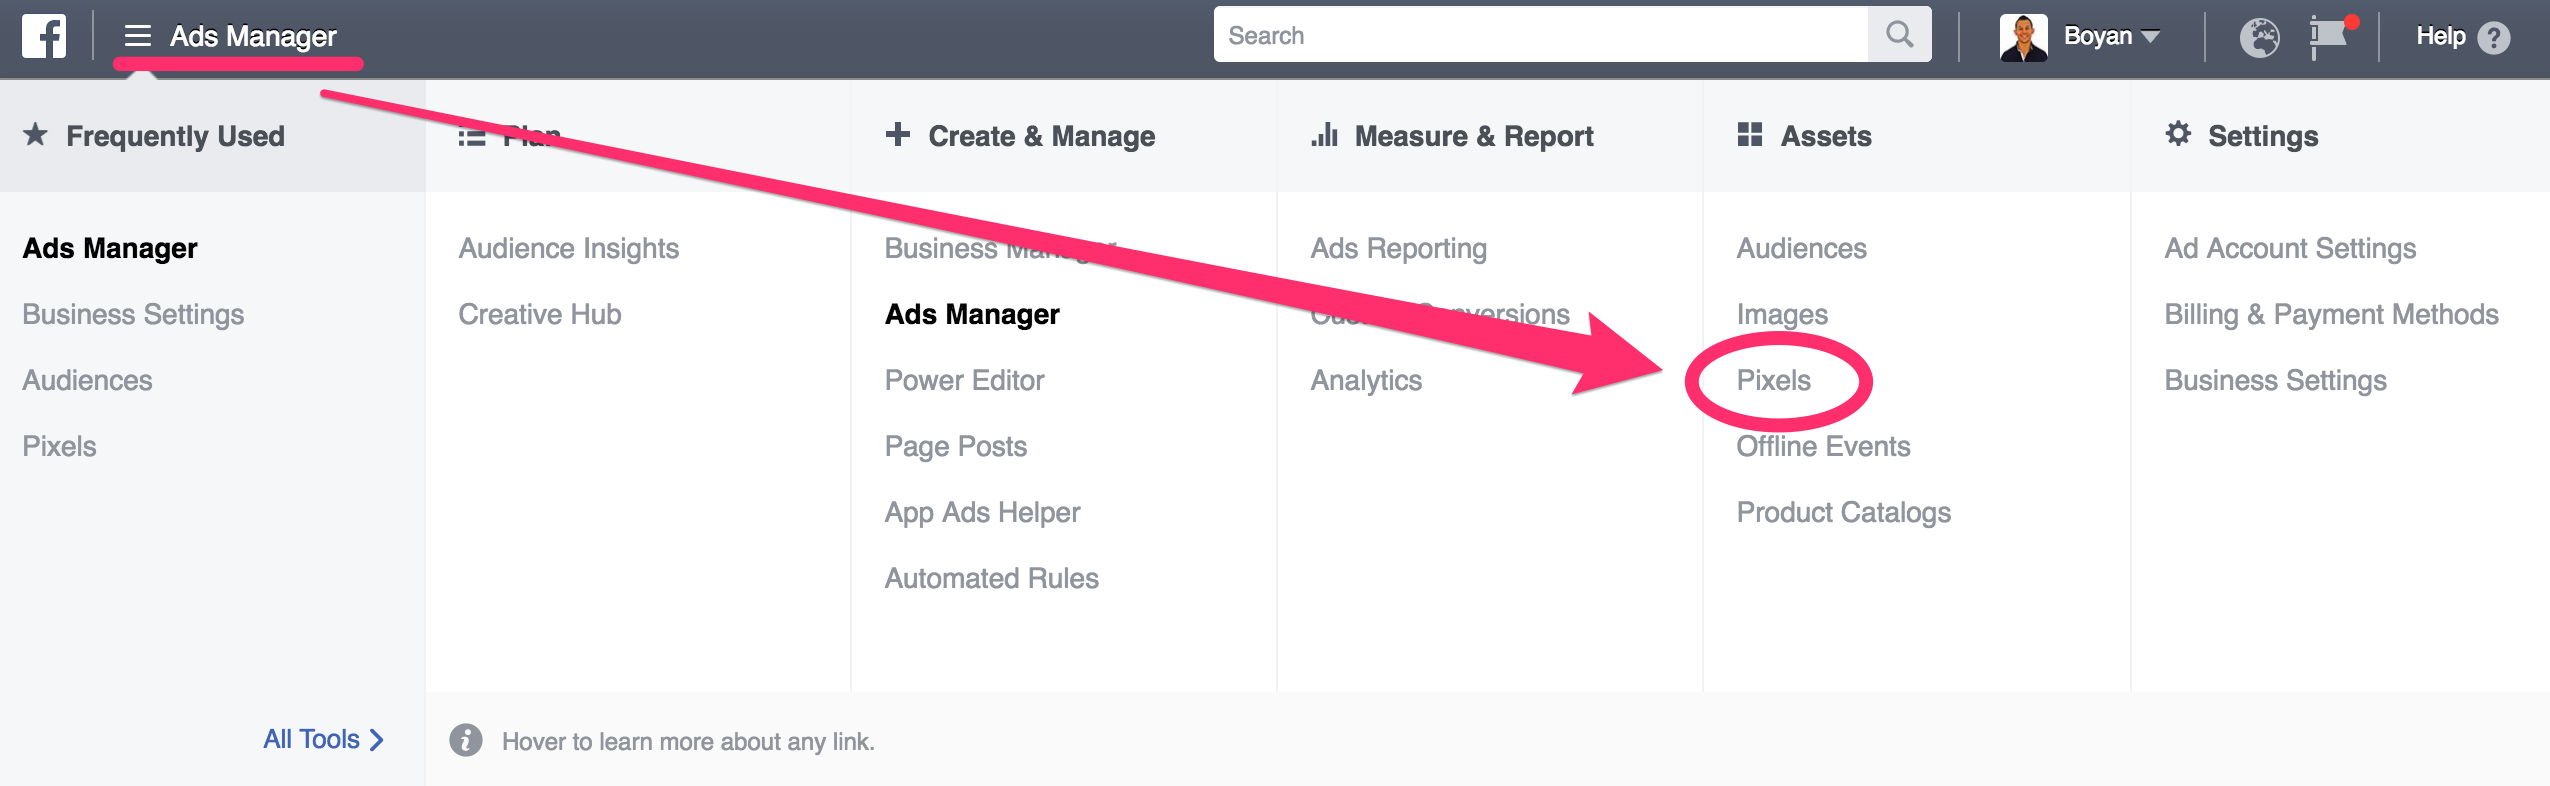 ads_manager22